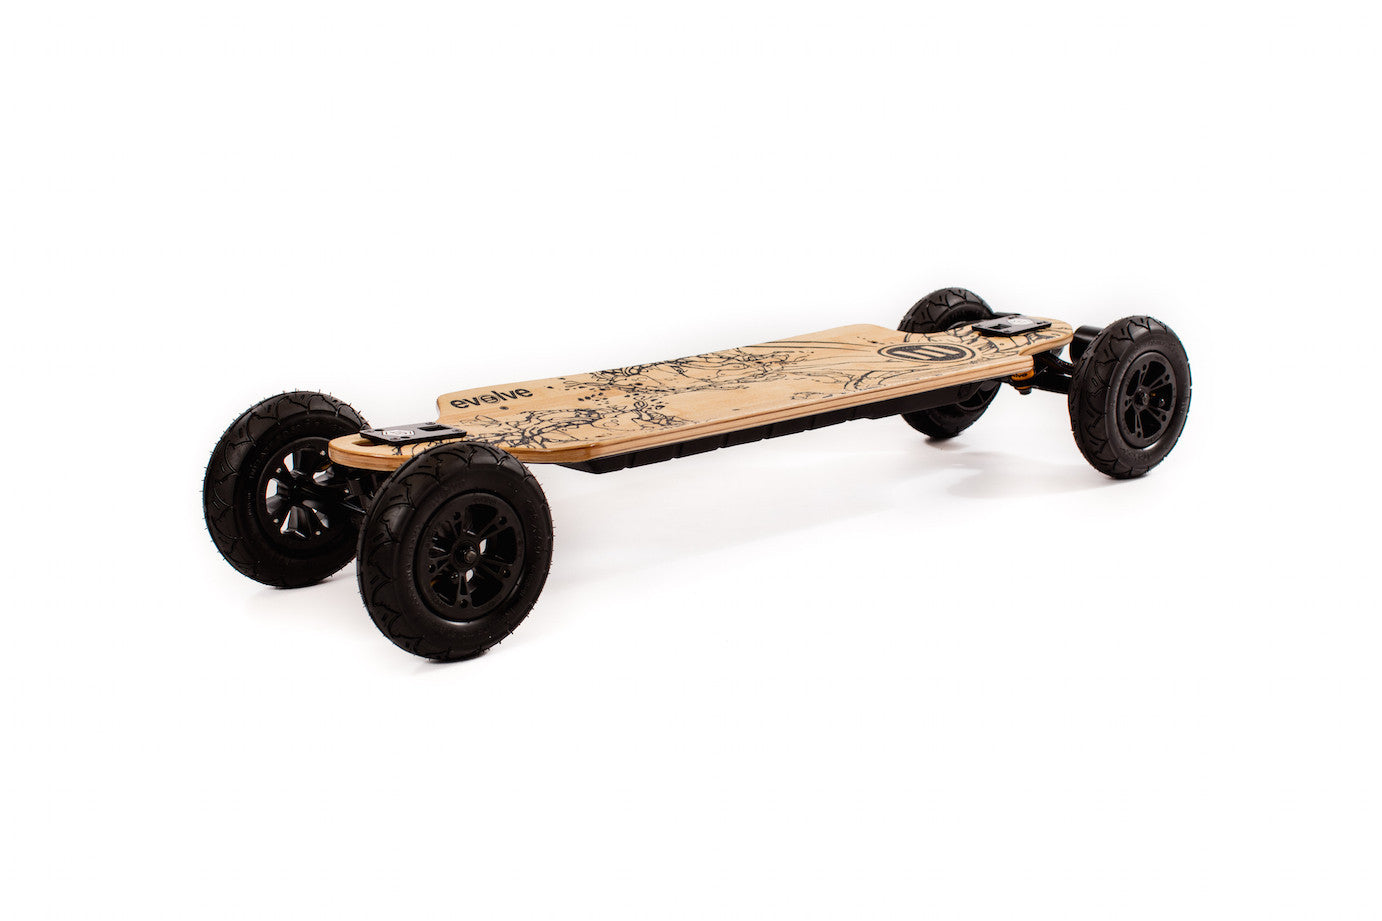 Electric Skateboard For Sale >> Evolve Bamboo Gt 2 In 1 Electric Skateboard Street And Offroad Wheels Sale